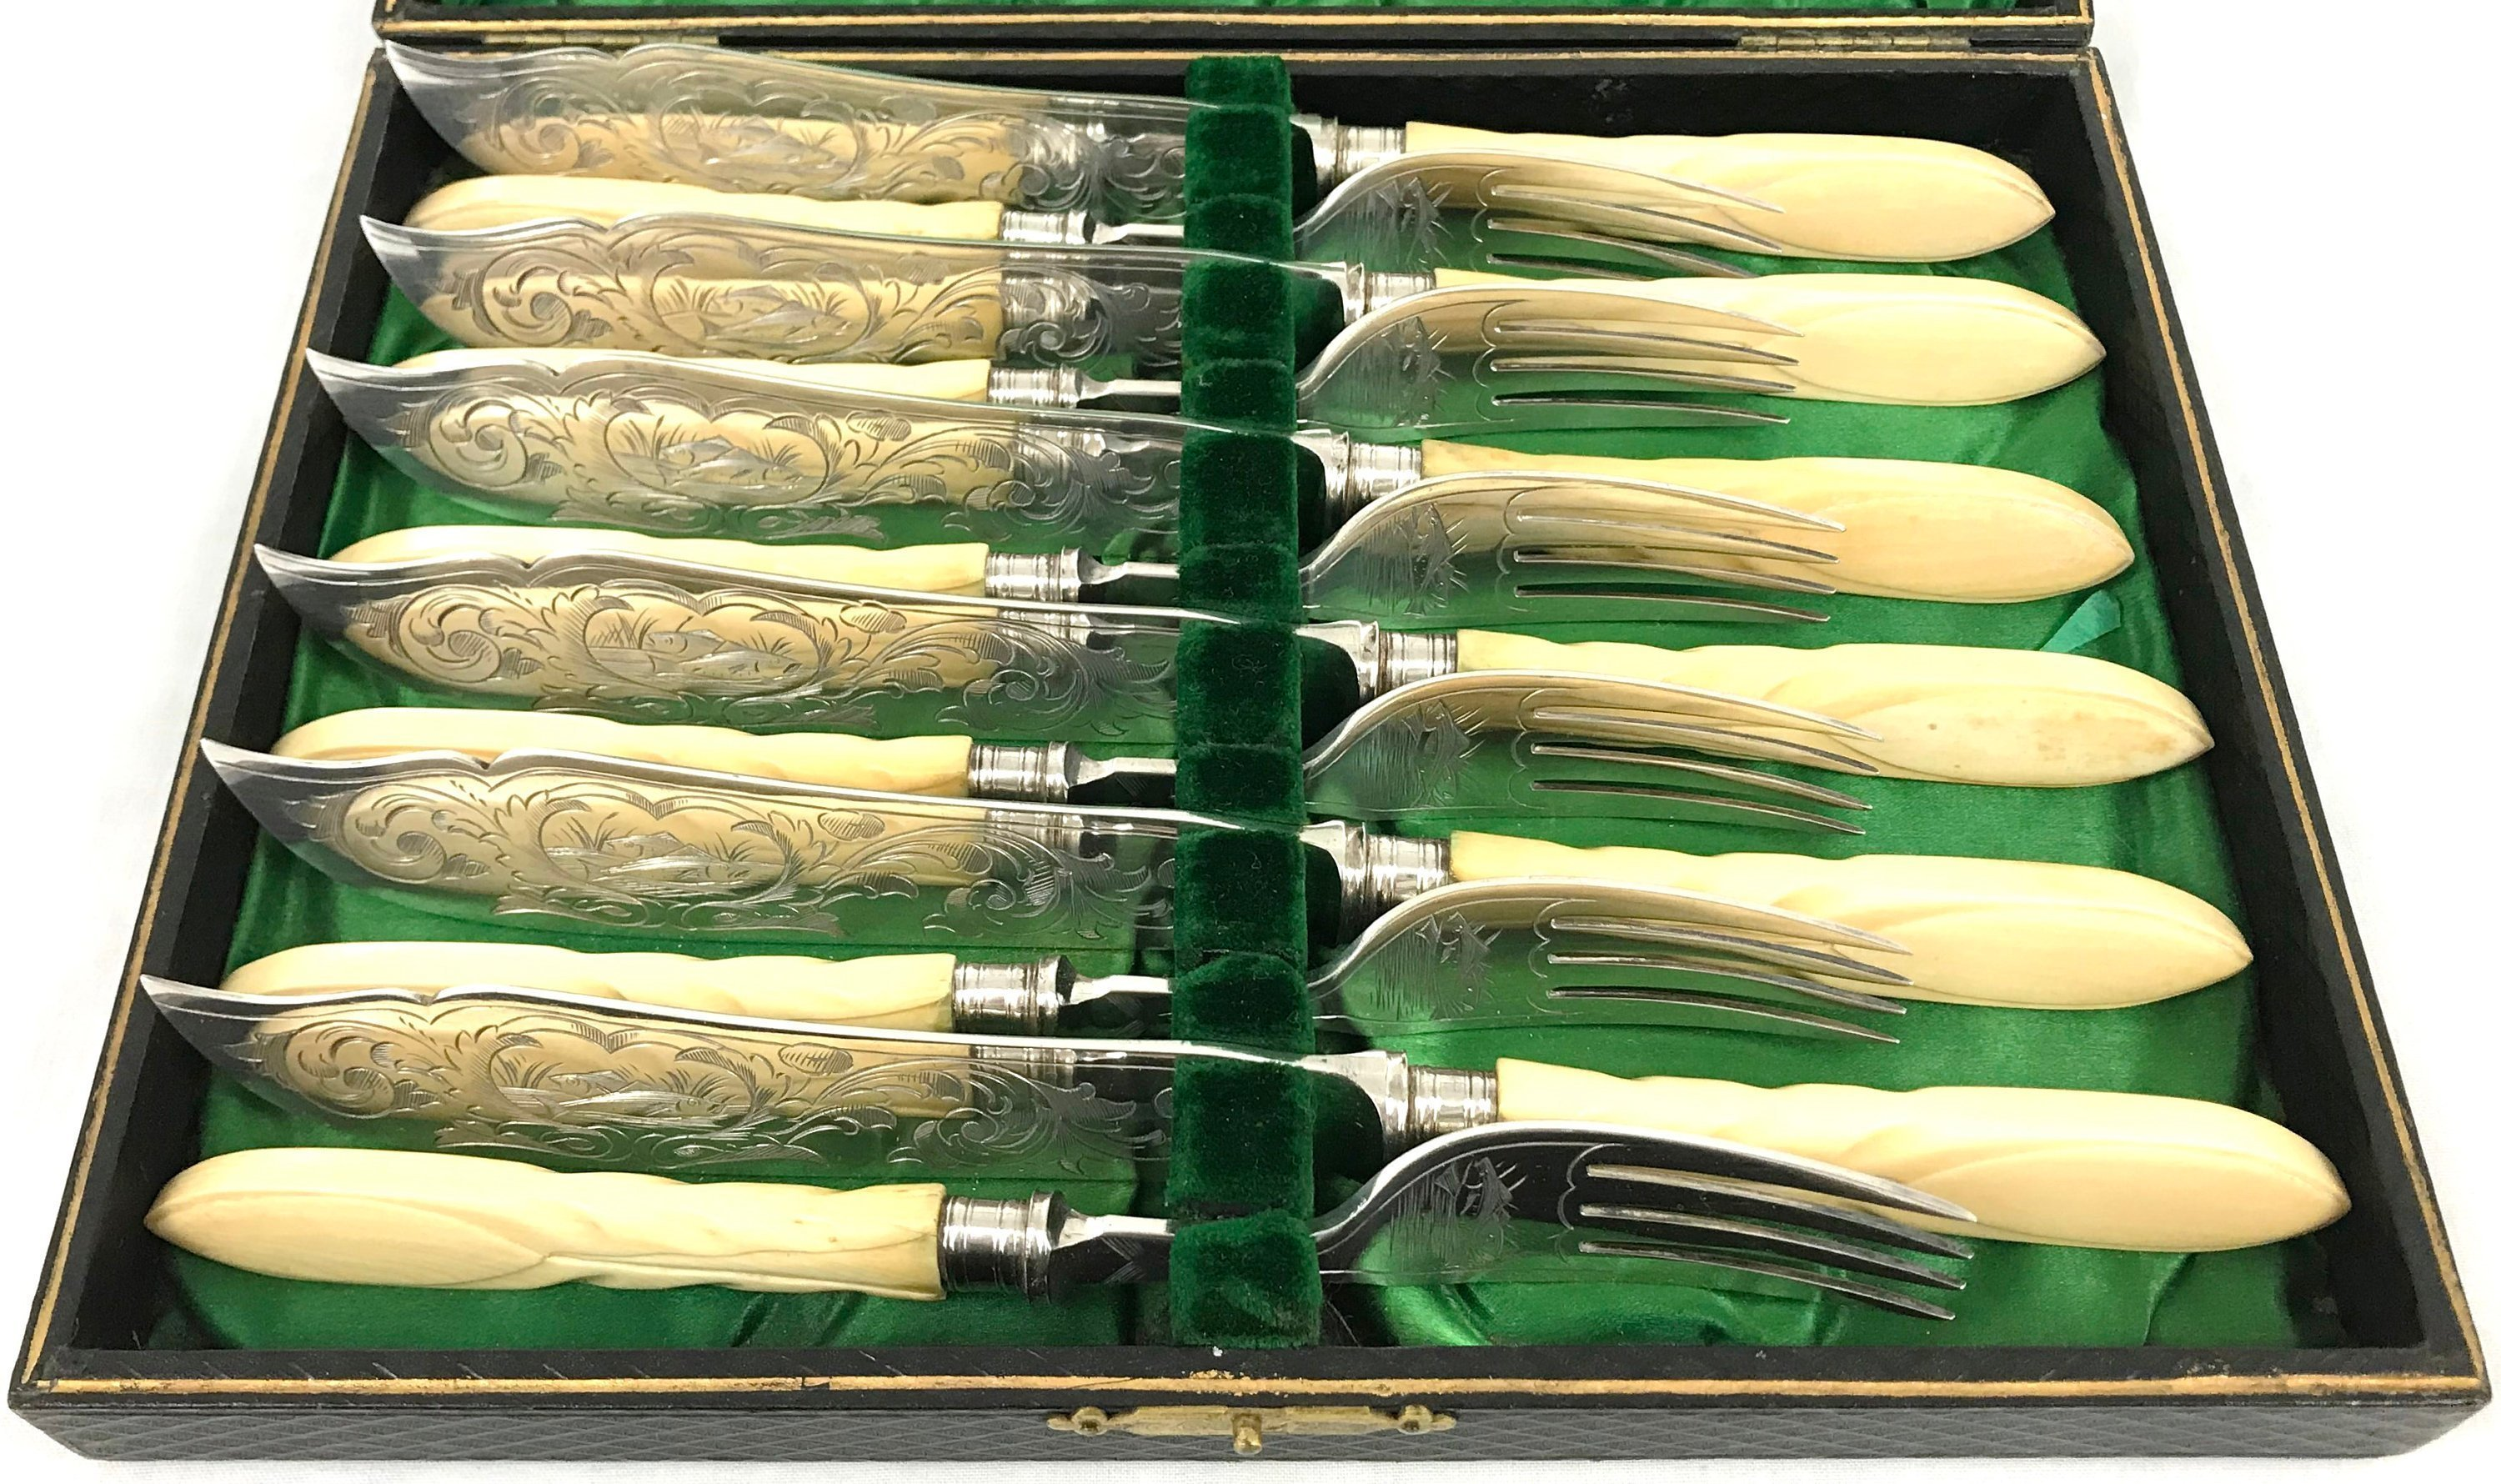 Exquisite Cutlery Set Fish Knives And Forks Silver Plate Carved Bone Handles Victorian Flatware Floral Vinterior